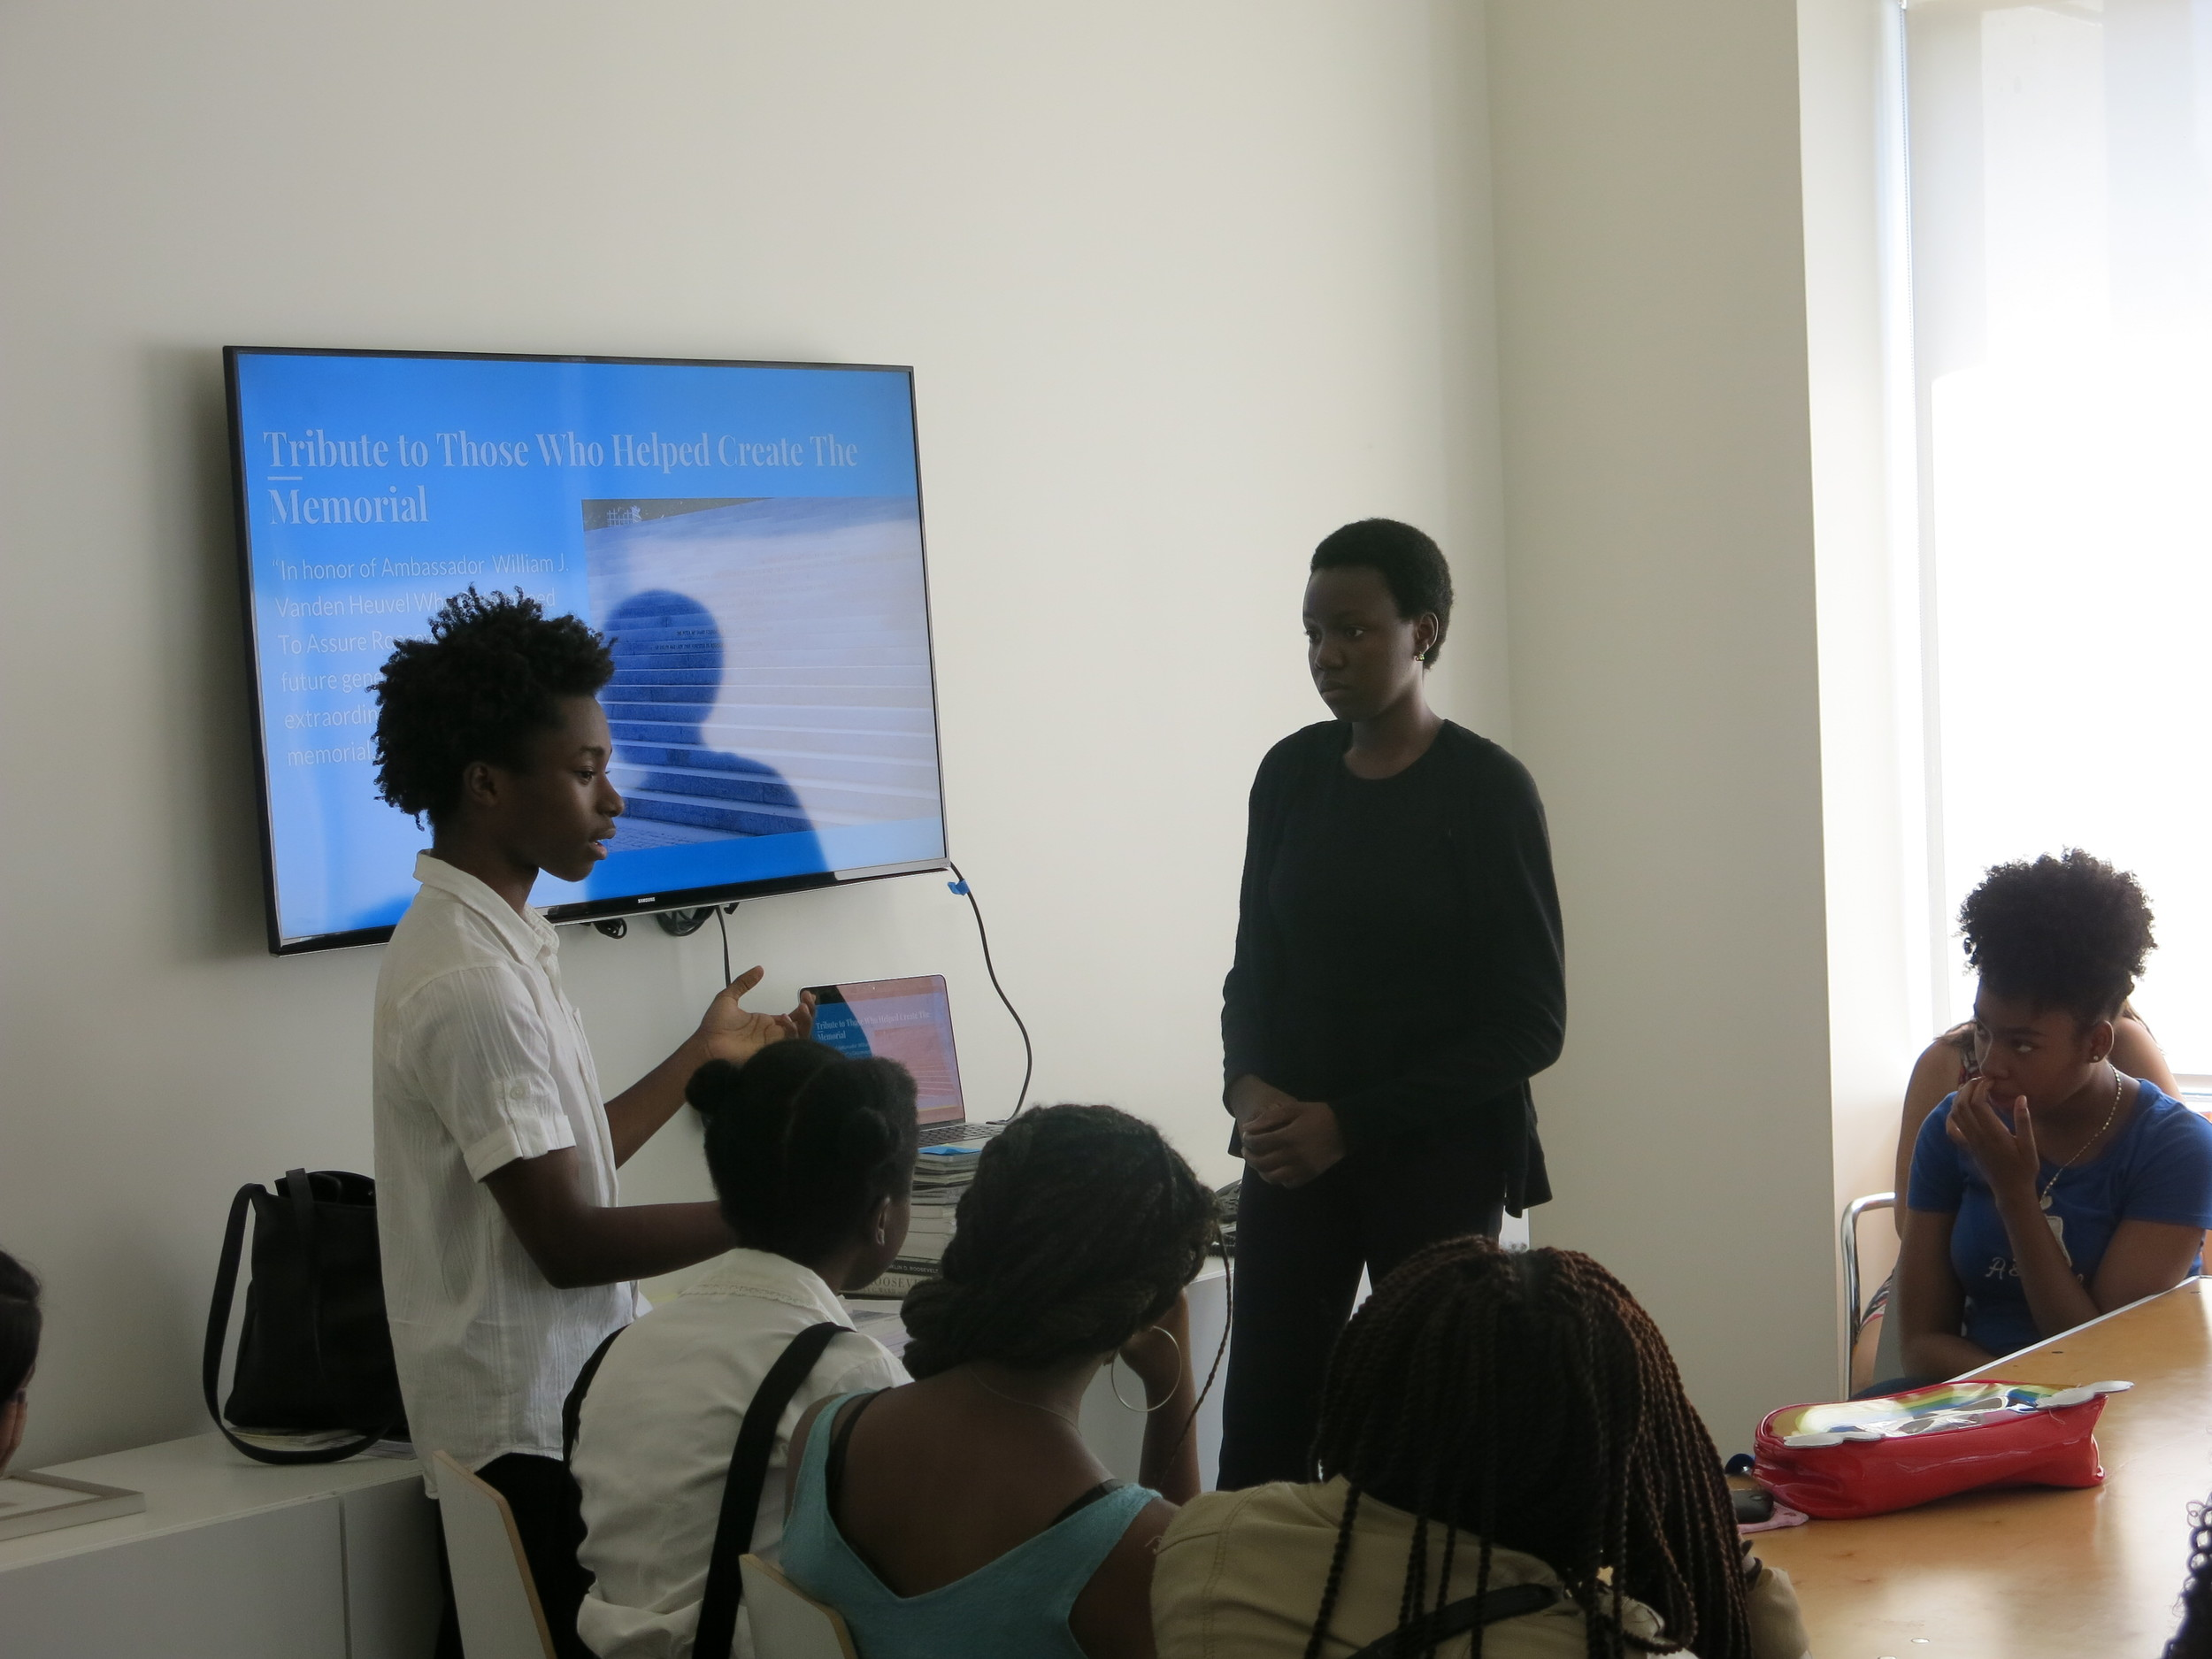 Isaiah and Marie give a presentation on their work at the Conservancy to other students in the internship program.